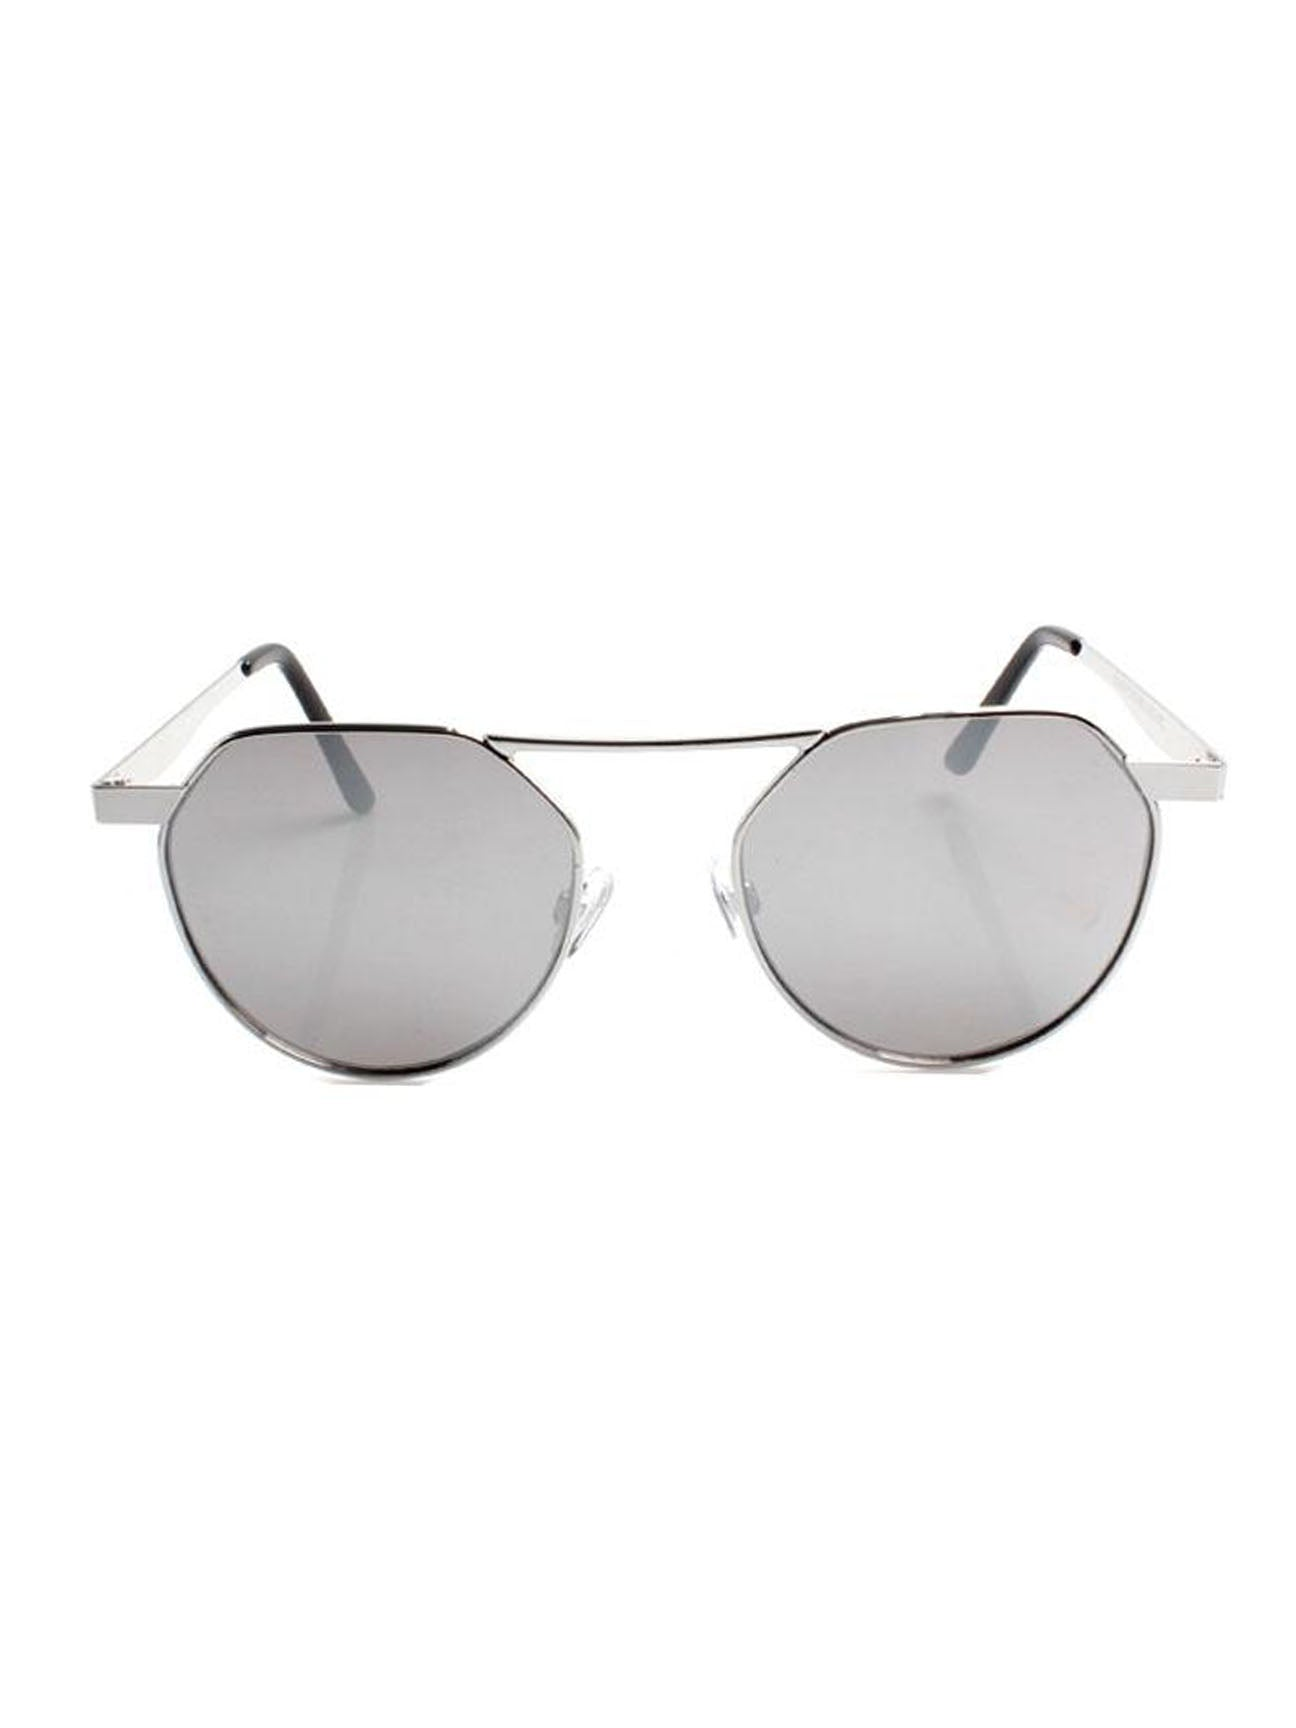 Aviator Flat Top Sunglasses With Mirrored Lenses